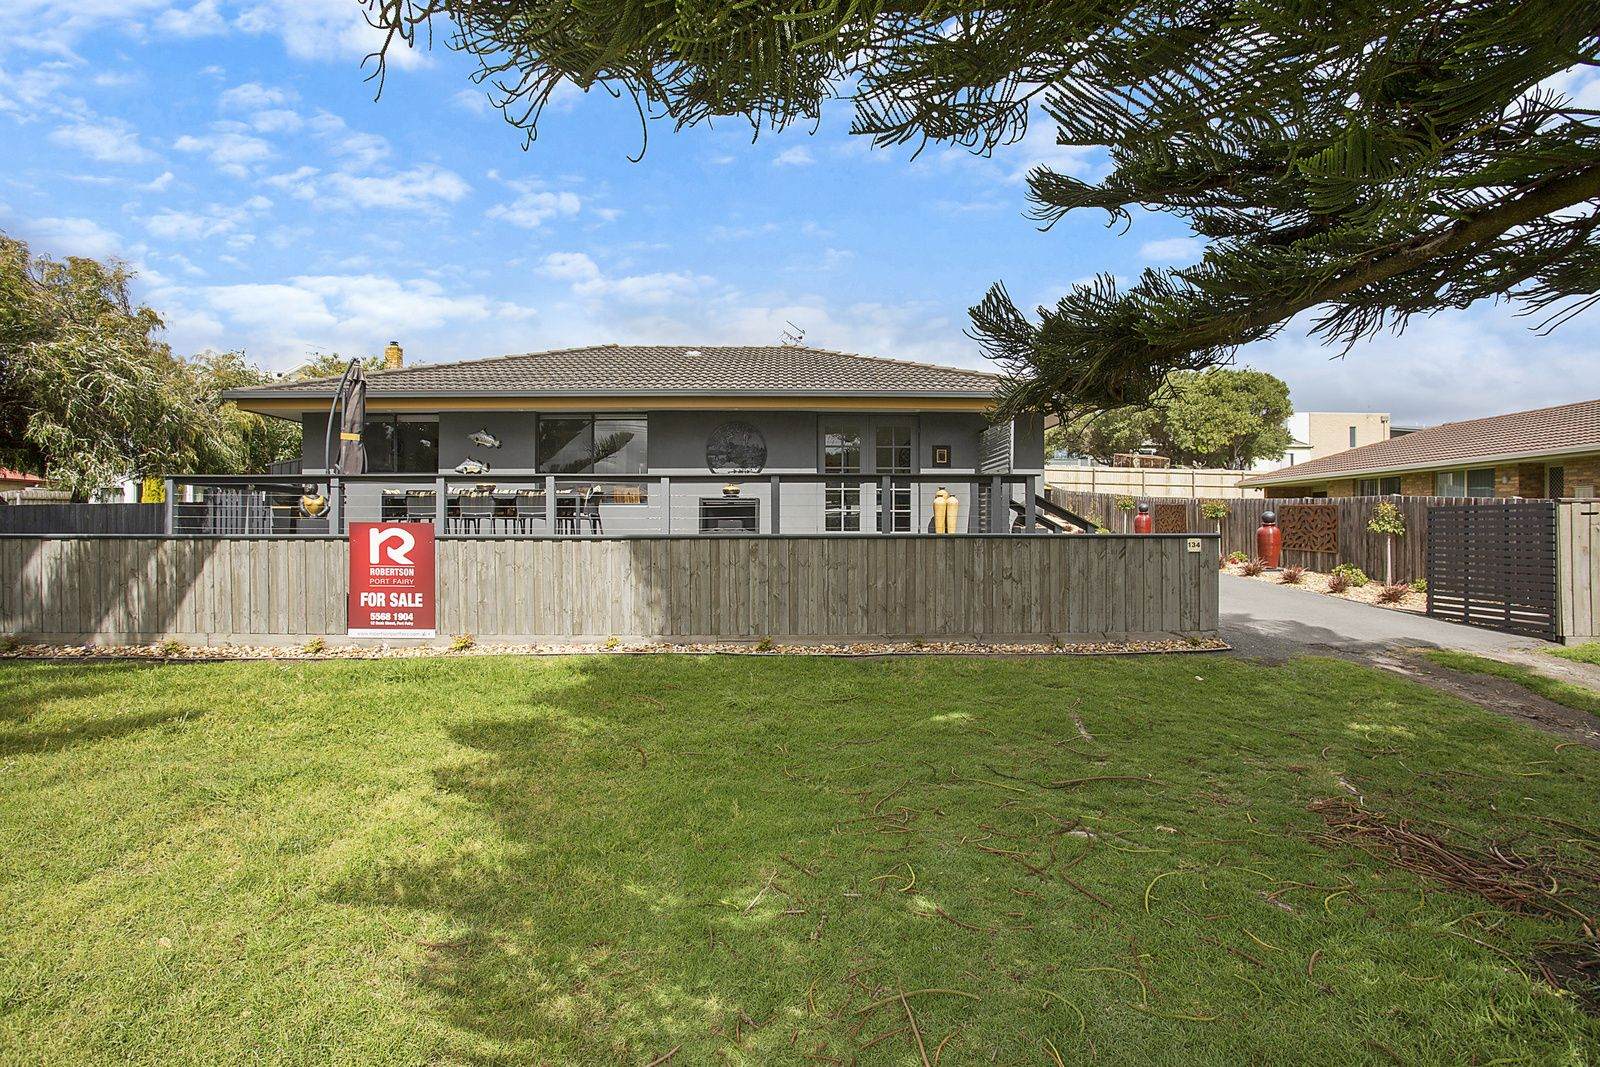 1/134 Griffith Street, Port Fairy VIC 3284, Image 0